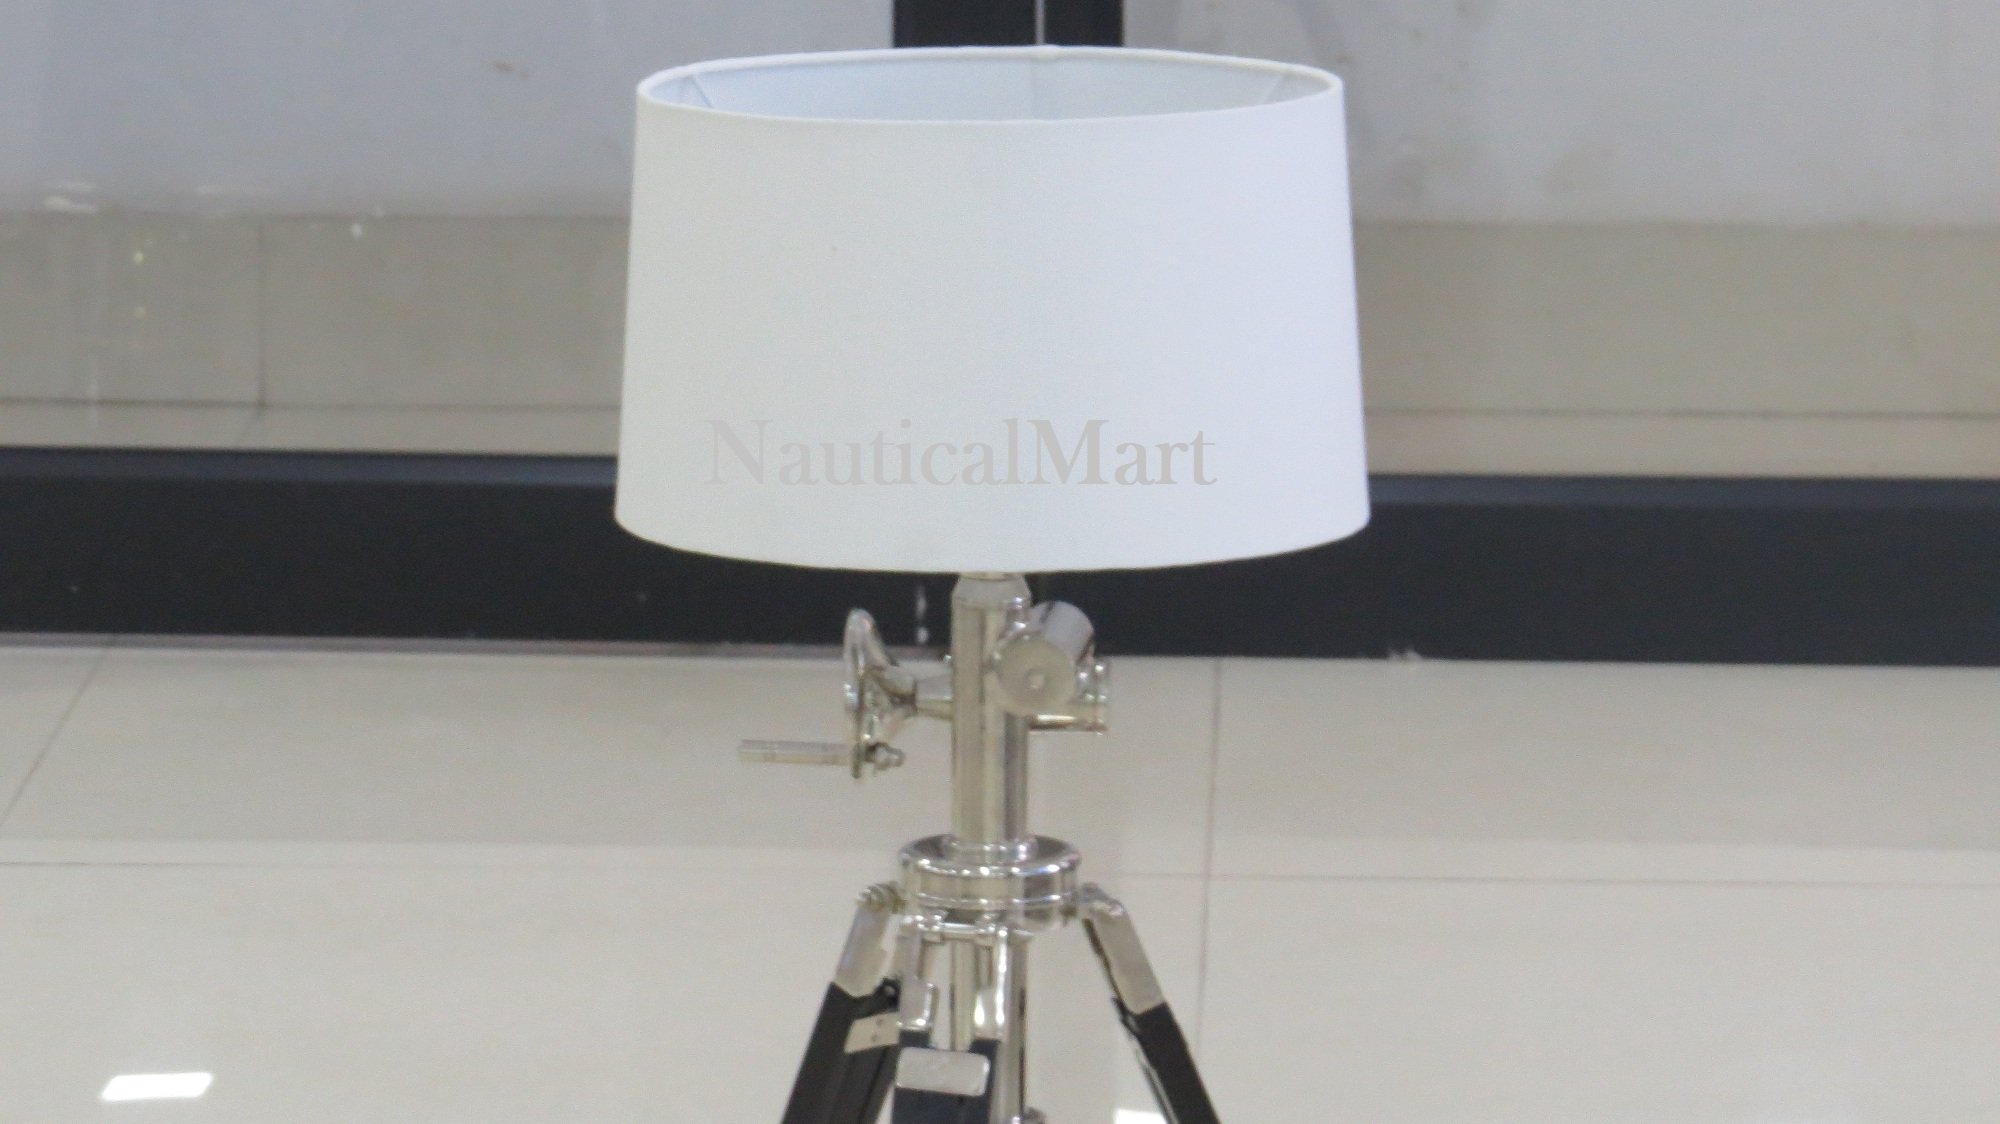 White Cotton Straight Drum Lamp Shade For Royal Lamp By Nauticalmart by NAUTICALMART (Image #1)